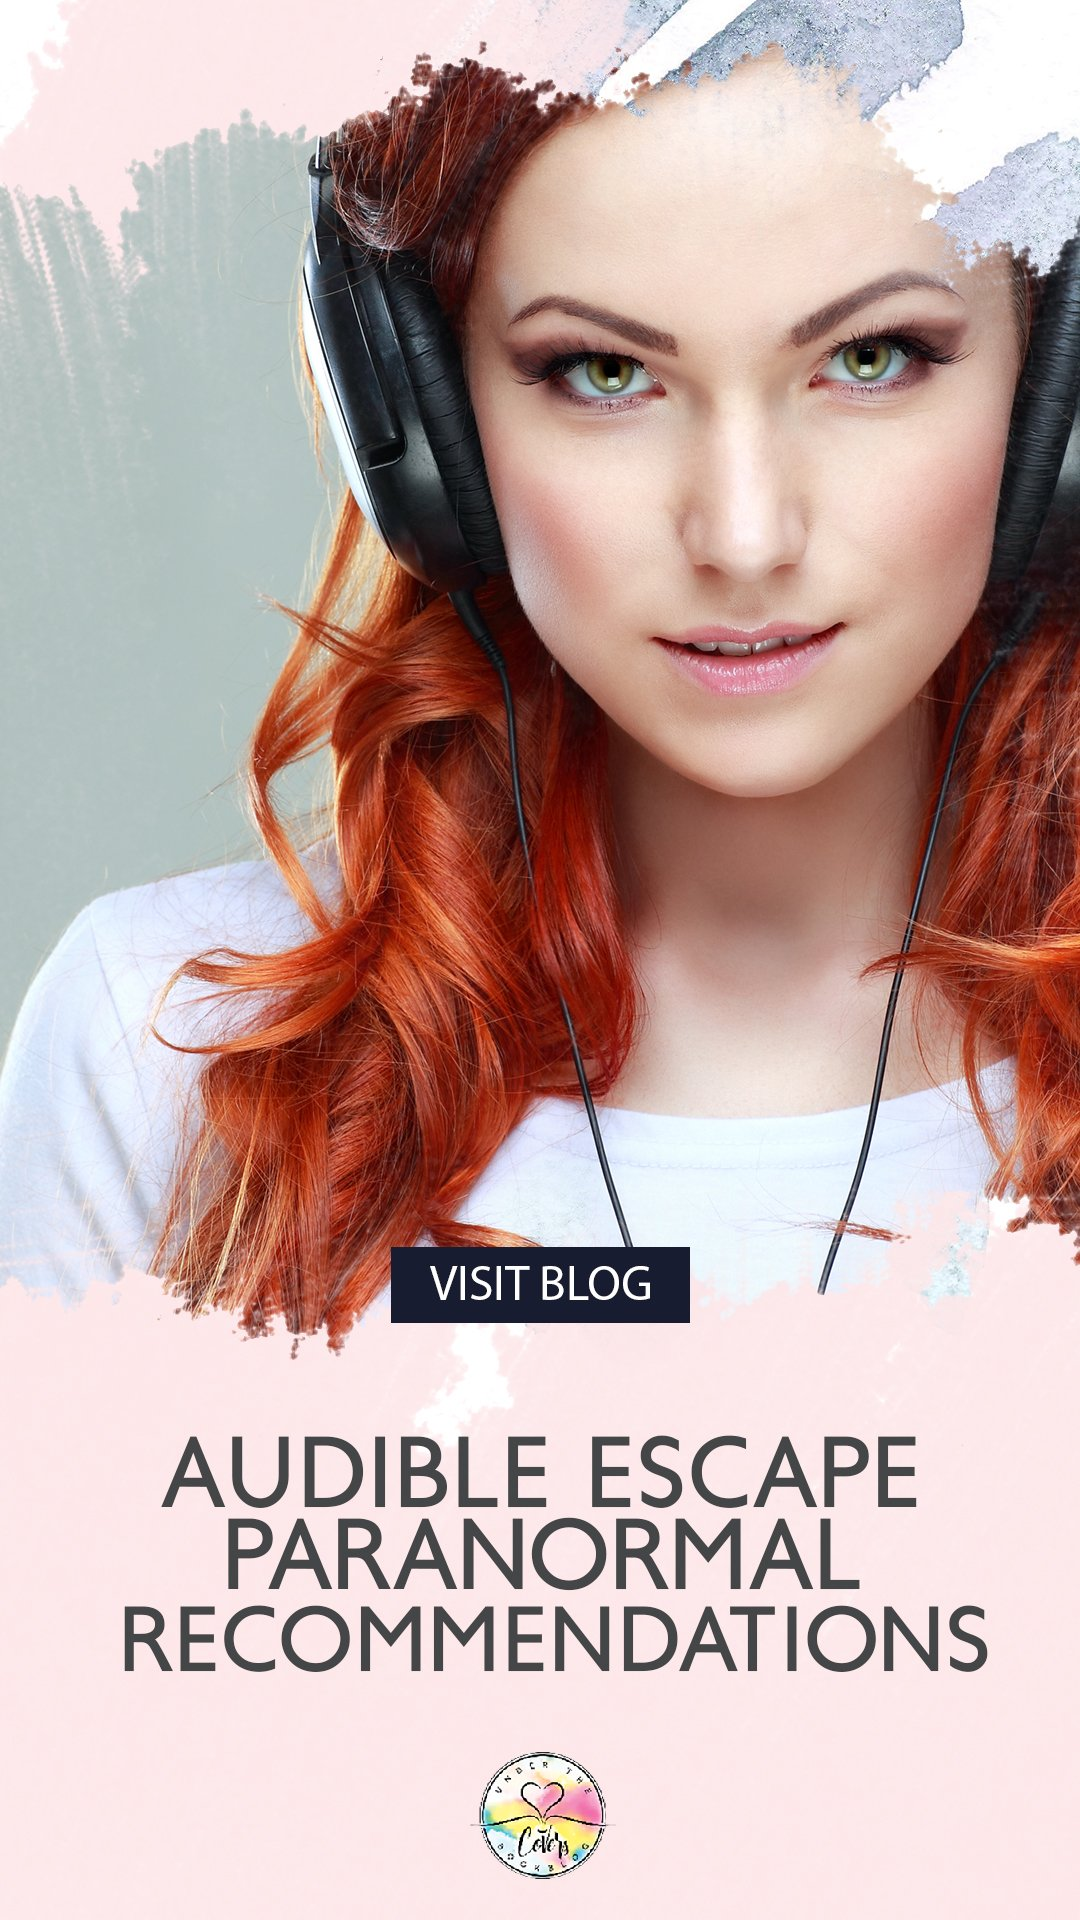 Audible Escape Paranormal Recommendations